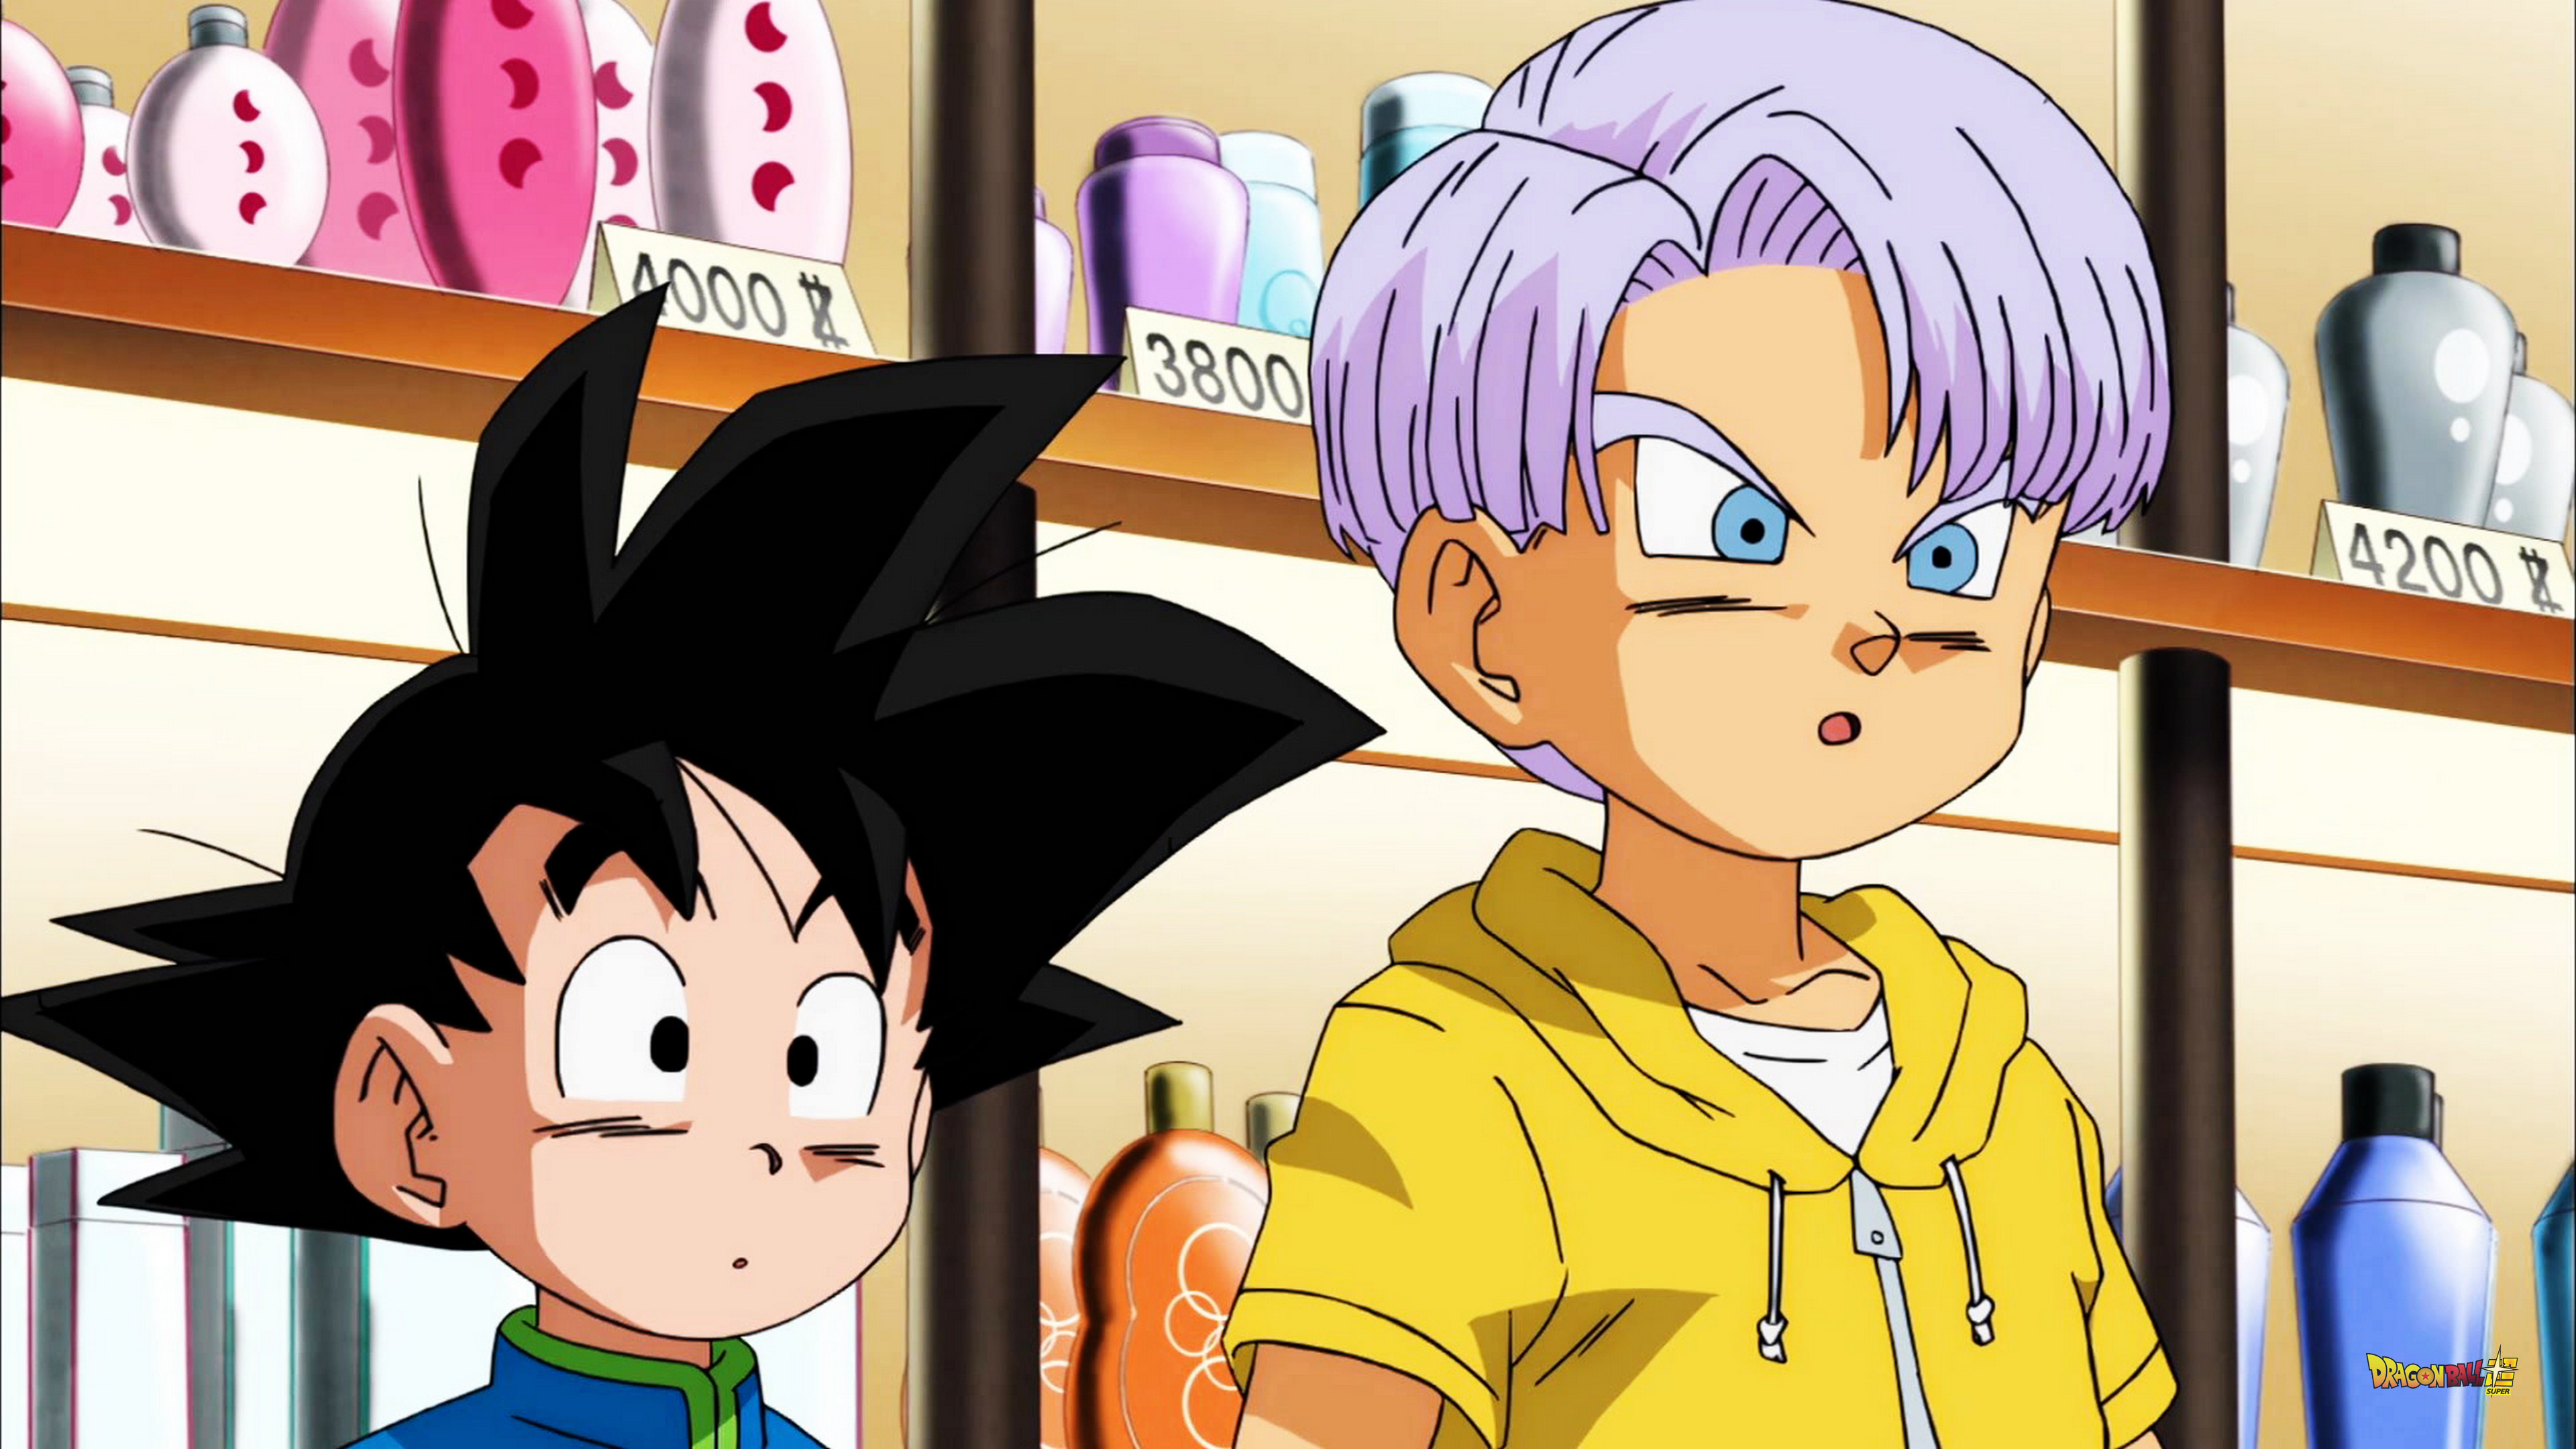 Dragon Ball Super Season 1 Episode 1 S01E01 4k uHD Wallpapers 24Goku works in his radish field, but wants to go training and fighting.